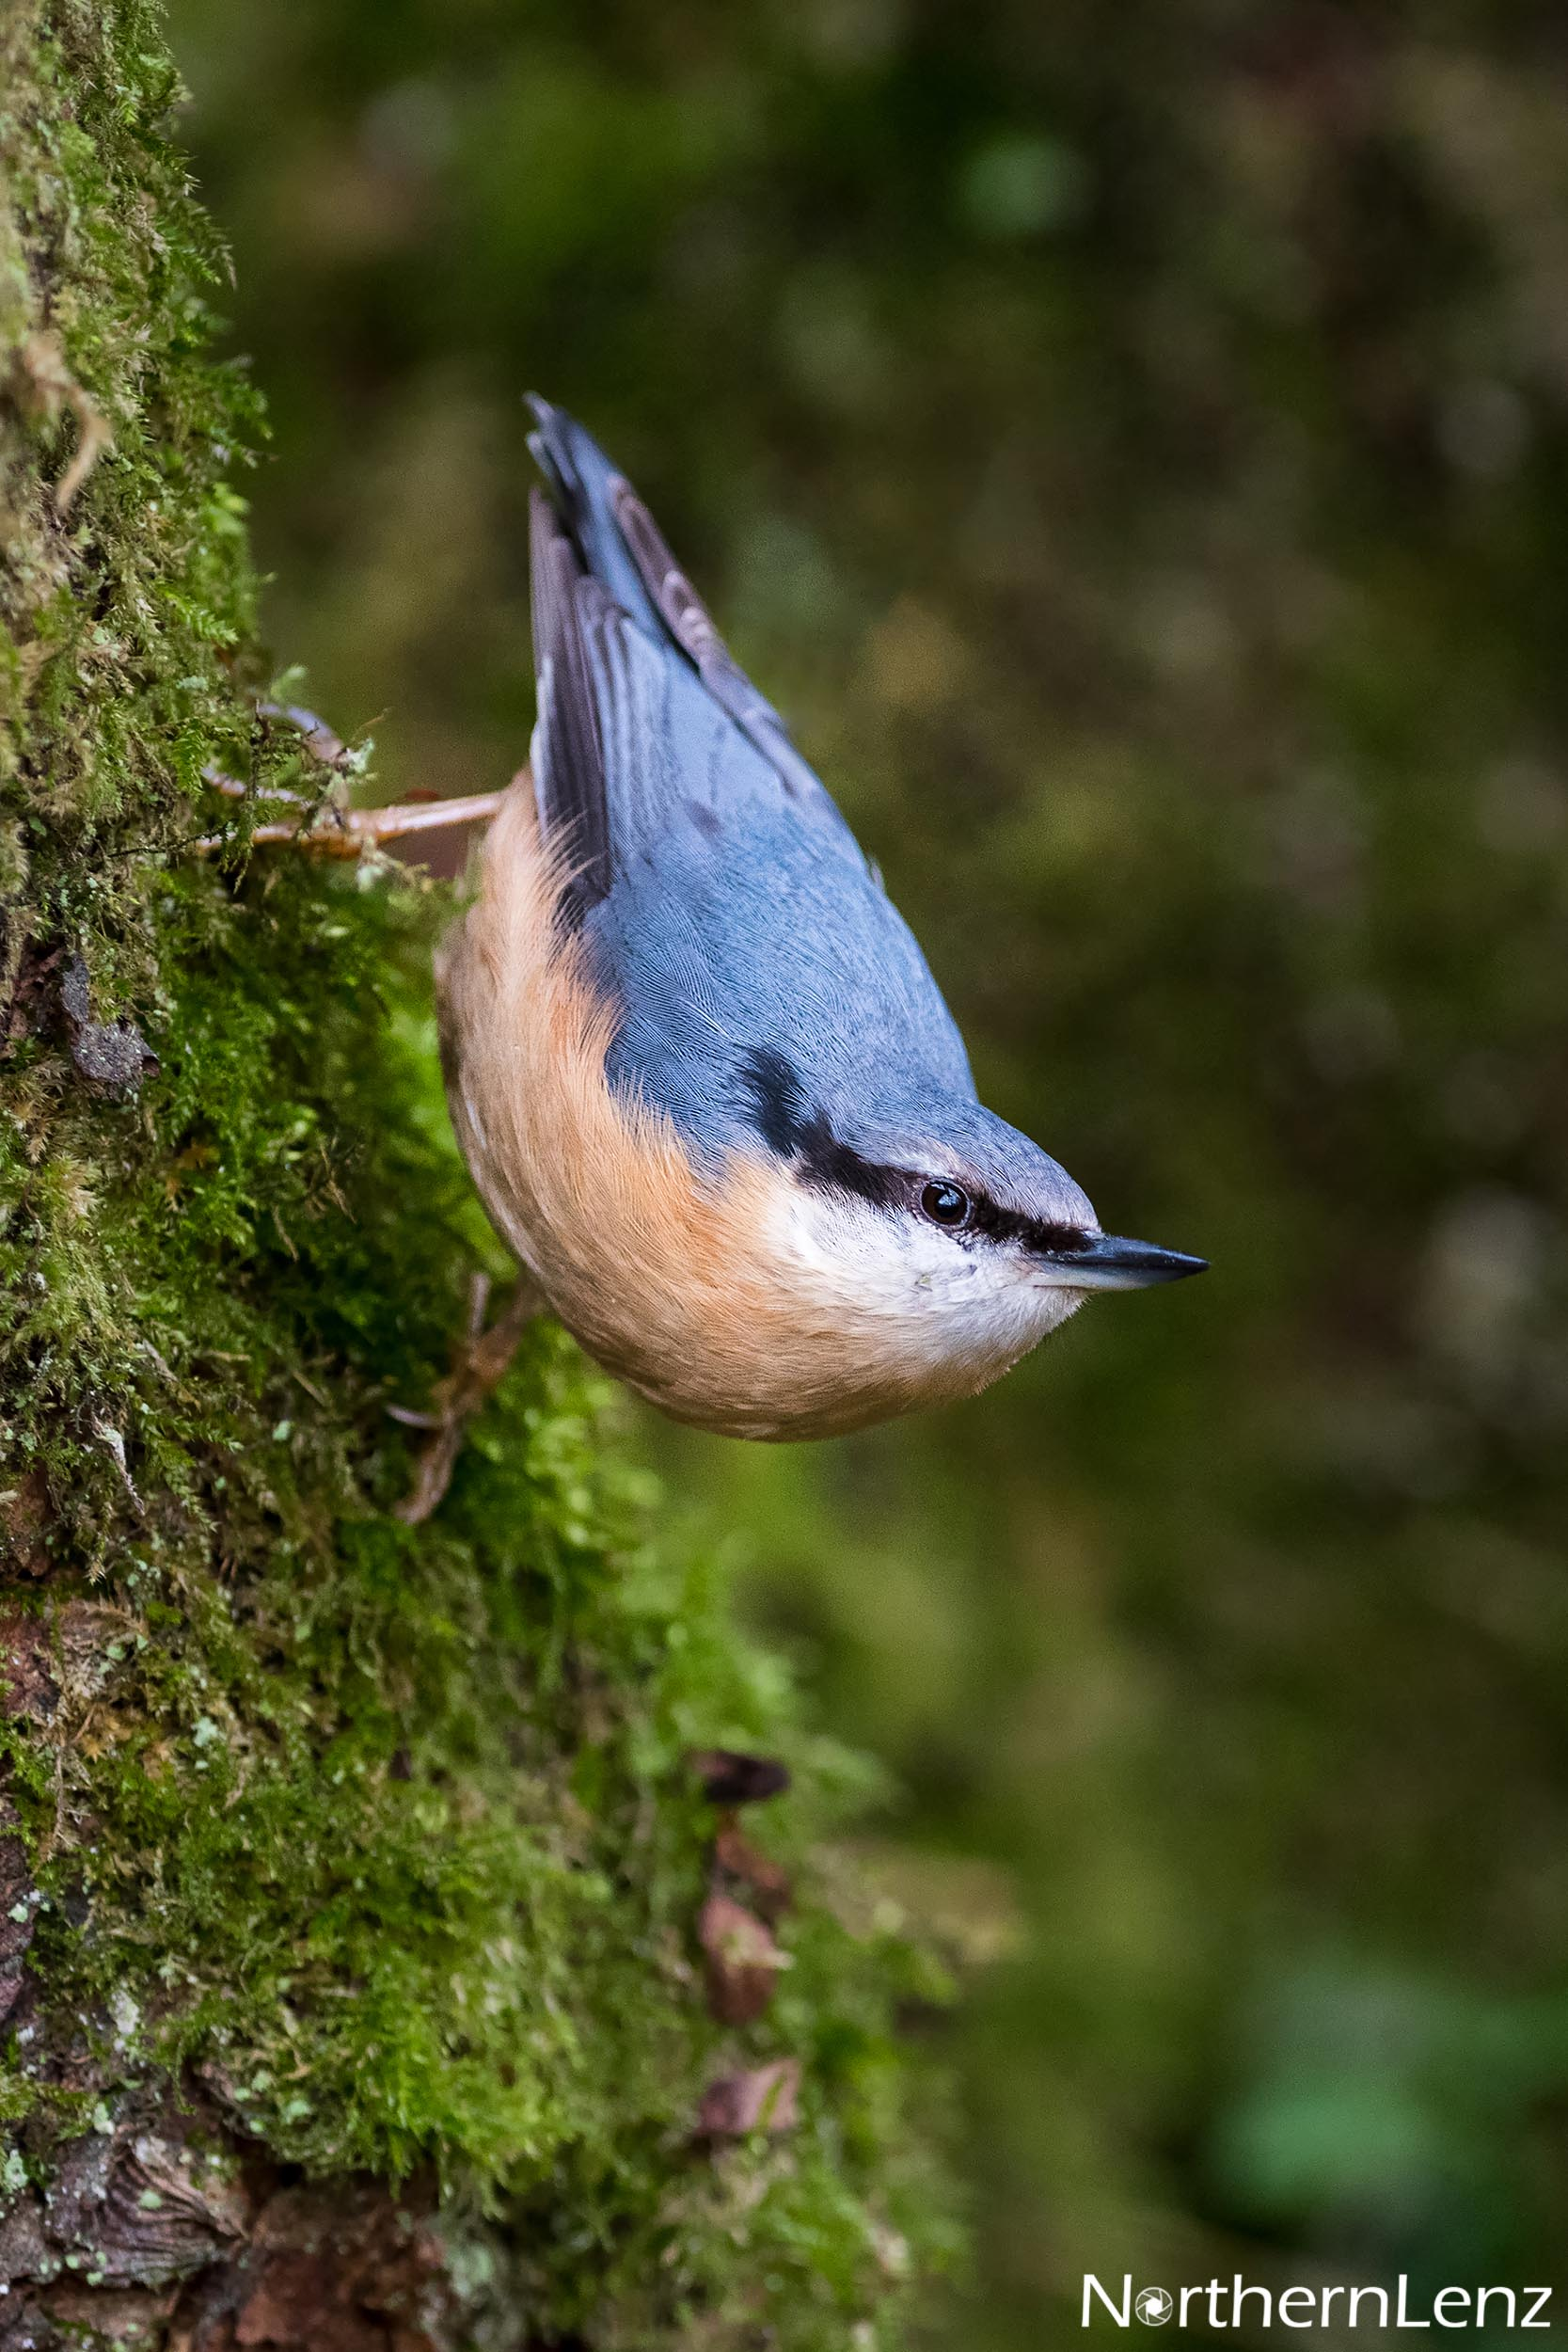 Fleeting glimpse of a Nuthatch  Image Ref: FF07